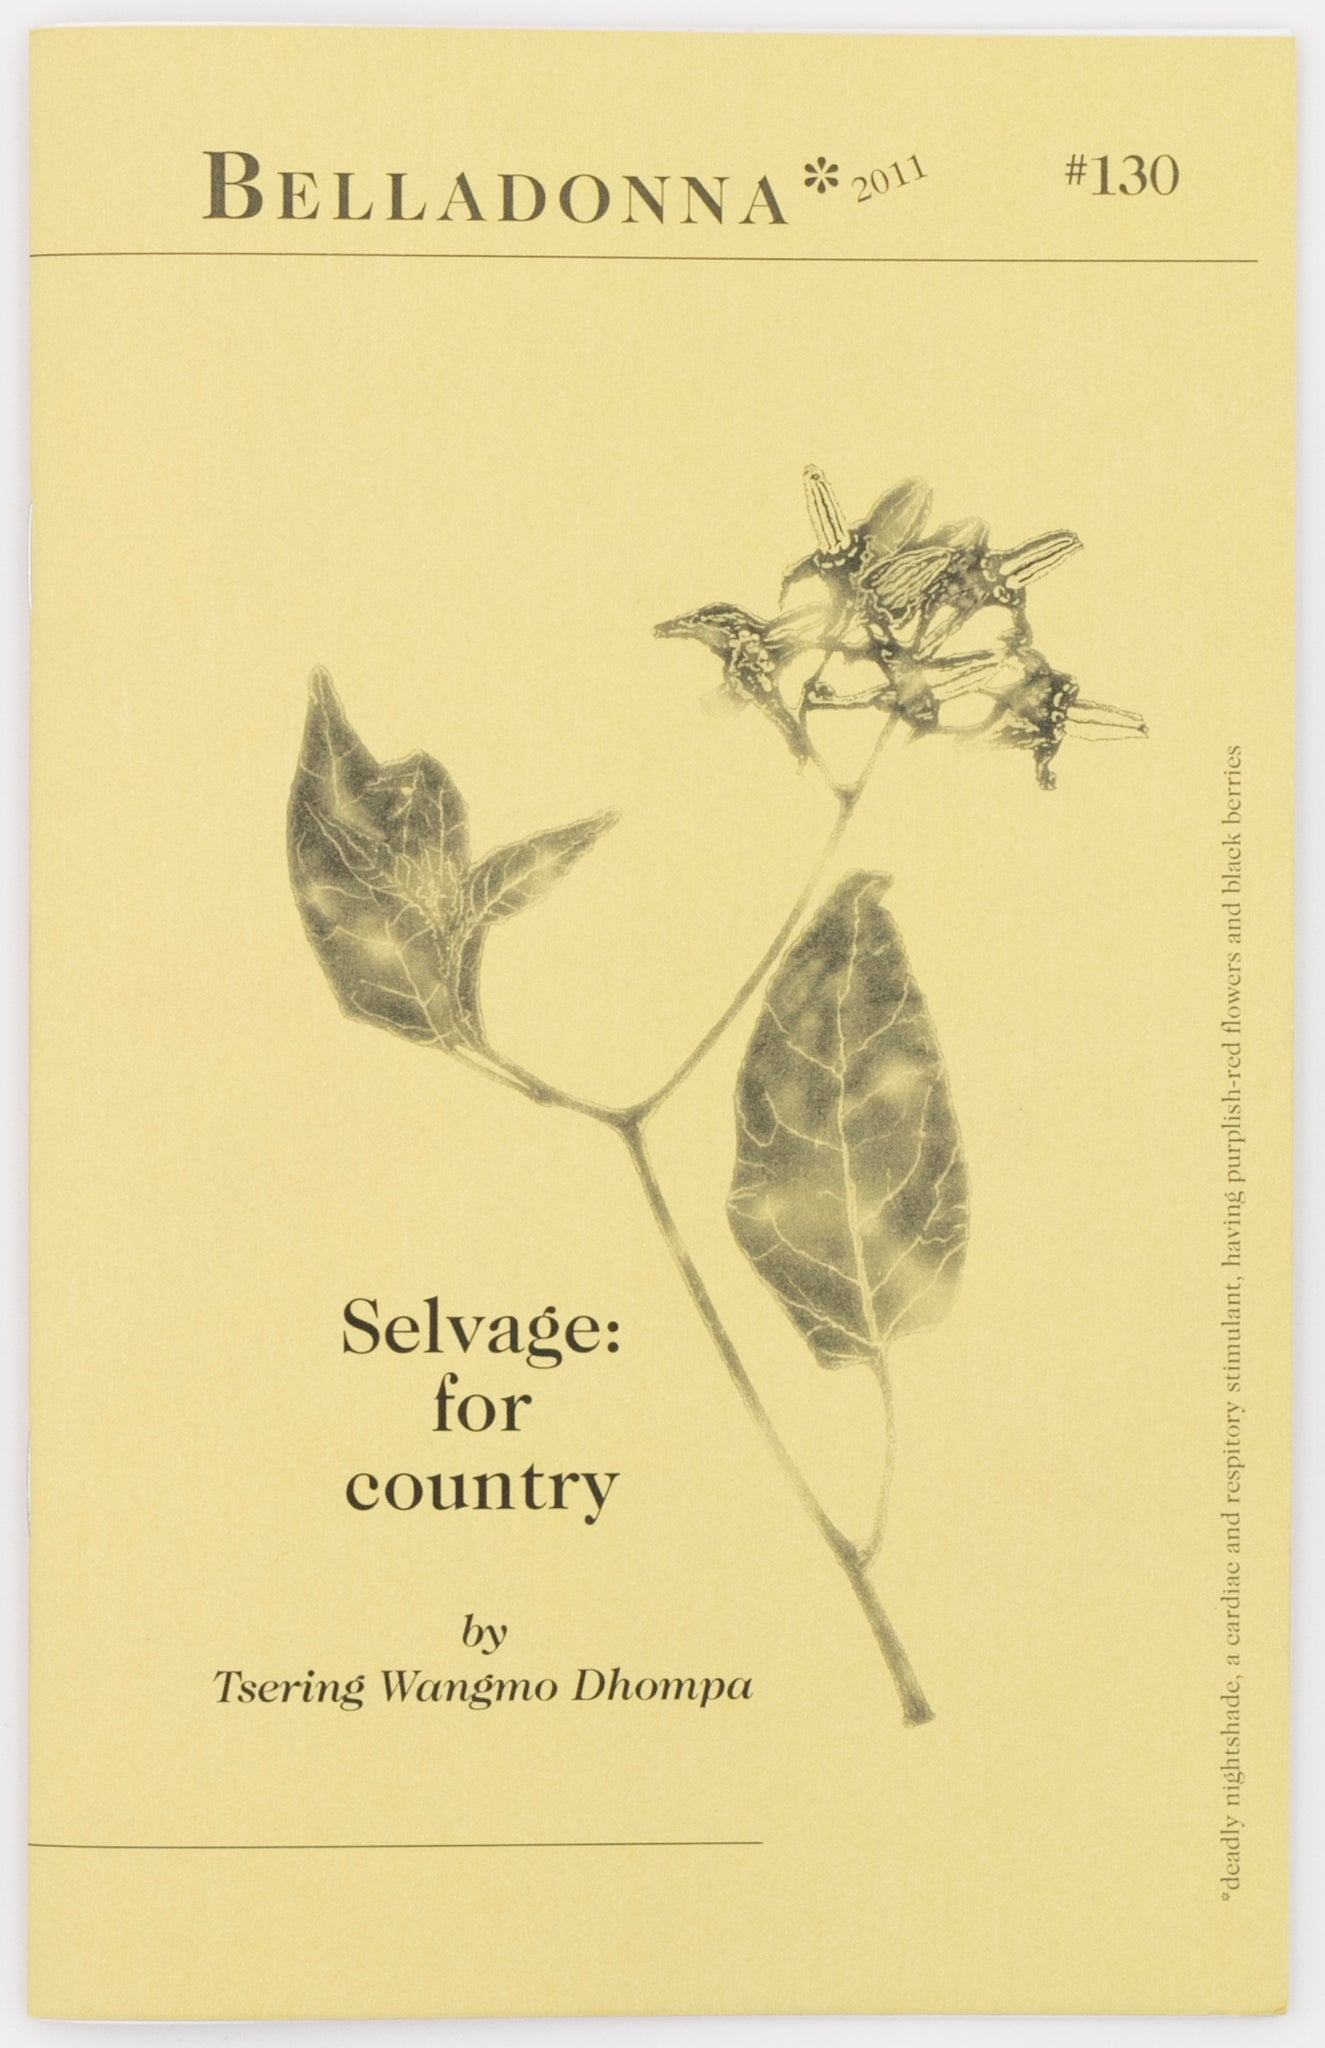 Selvage: for country (Belladonna* #130)